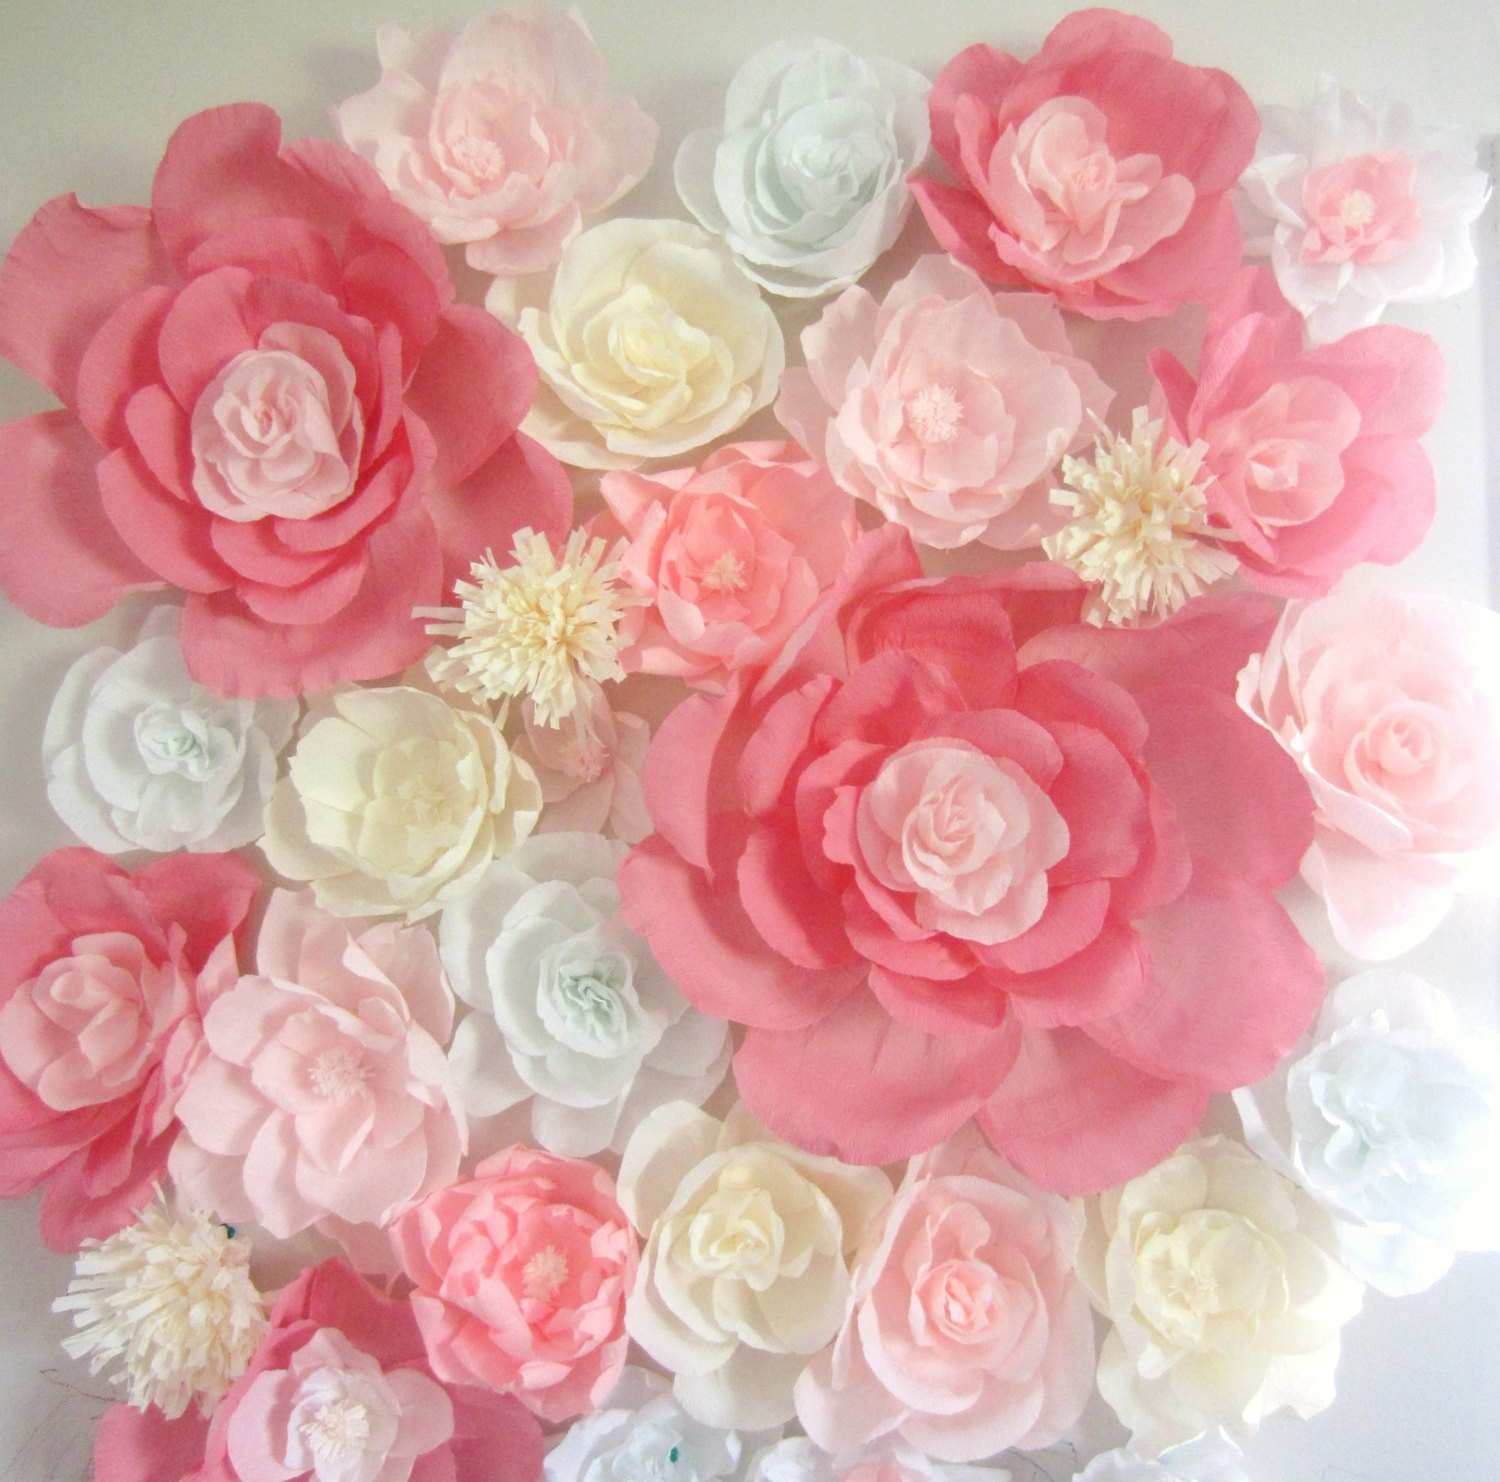 Paper flower wall art lovely mexican paper flowers wholesale choice paper flower wall art lovely mexican paper flowers wholesale choice image flower decoration ideas mightylinksfo